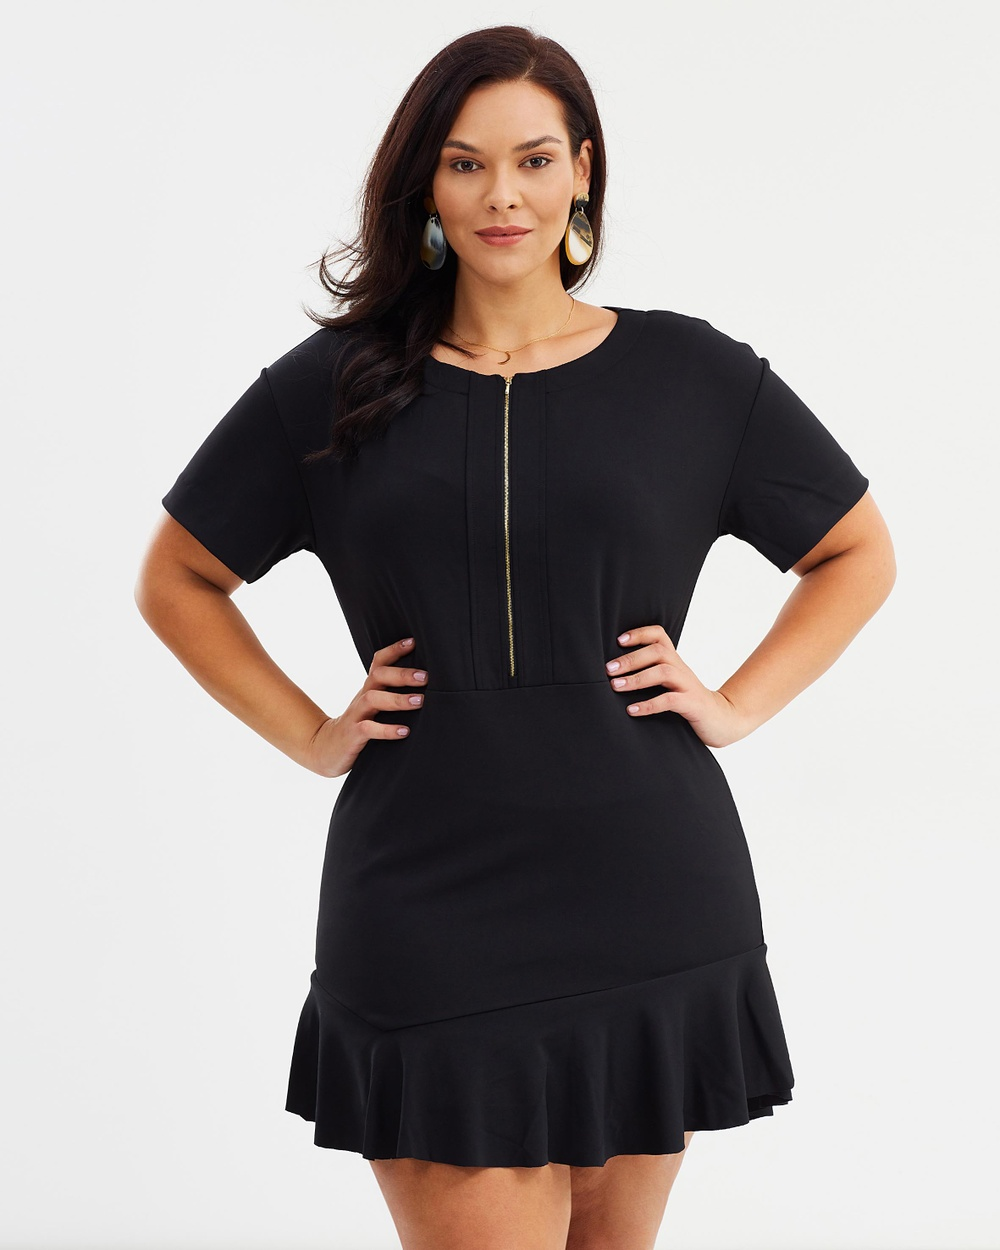 Violeta by MNG Alex Dress Dresses Black Alex Dress